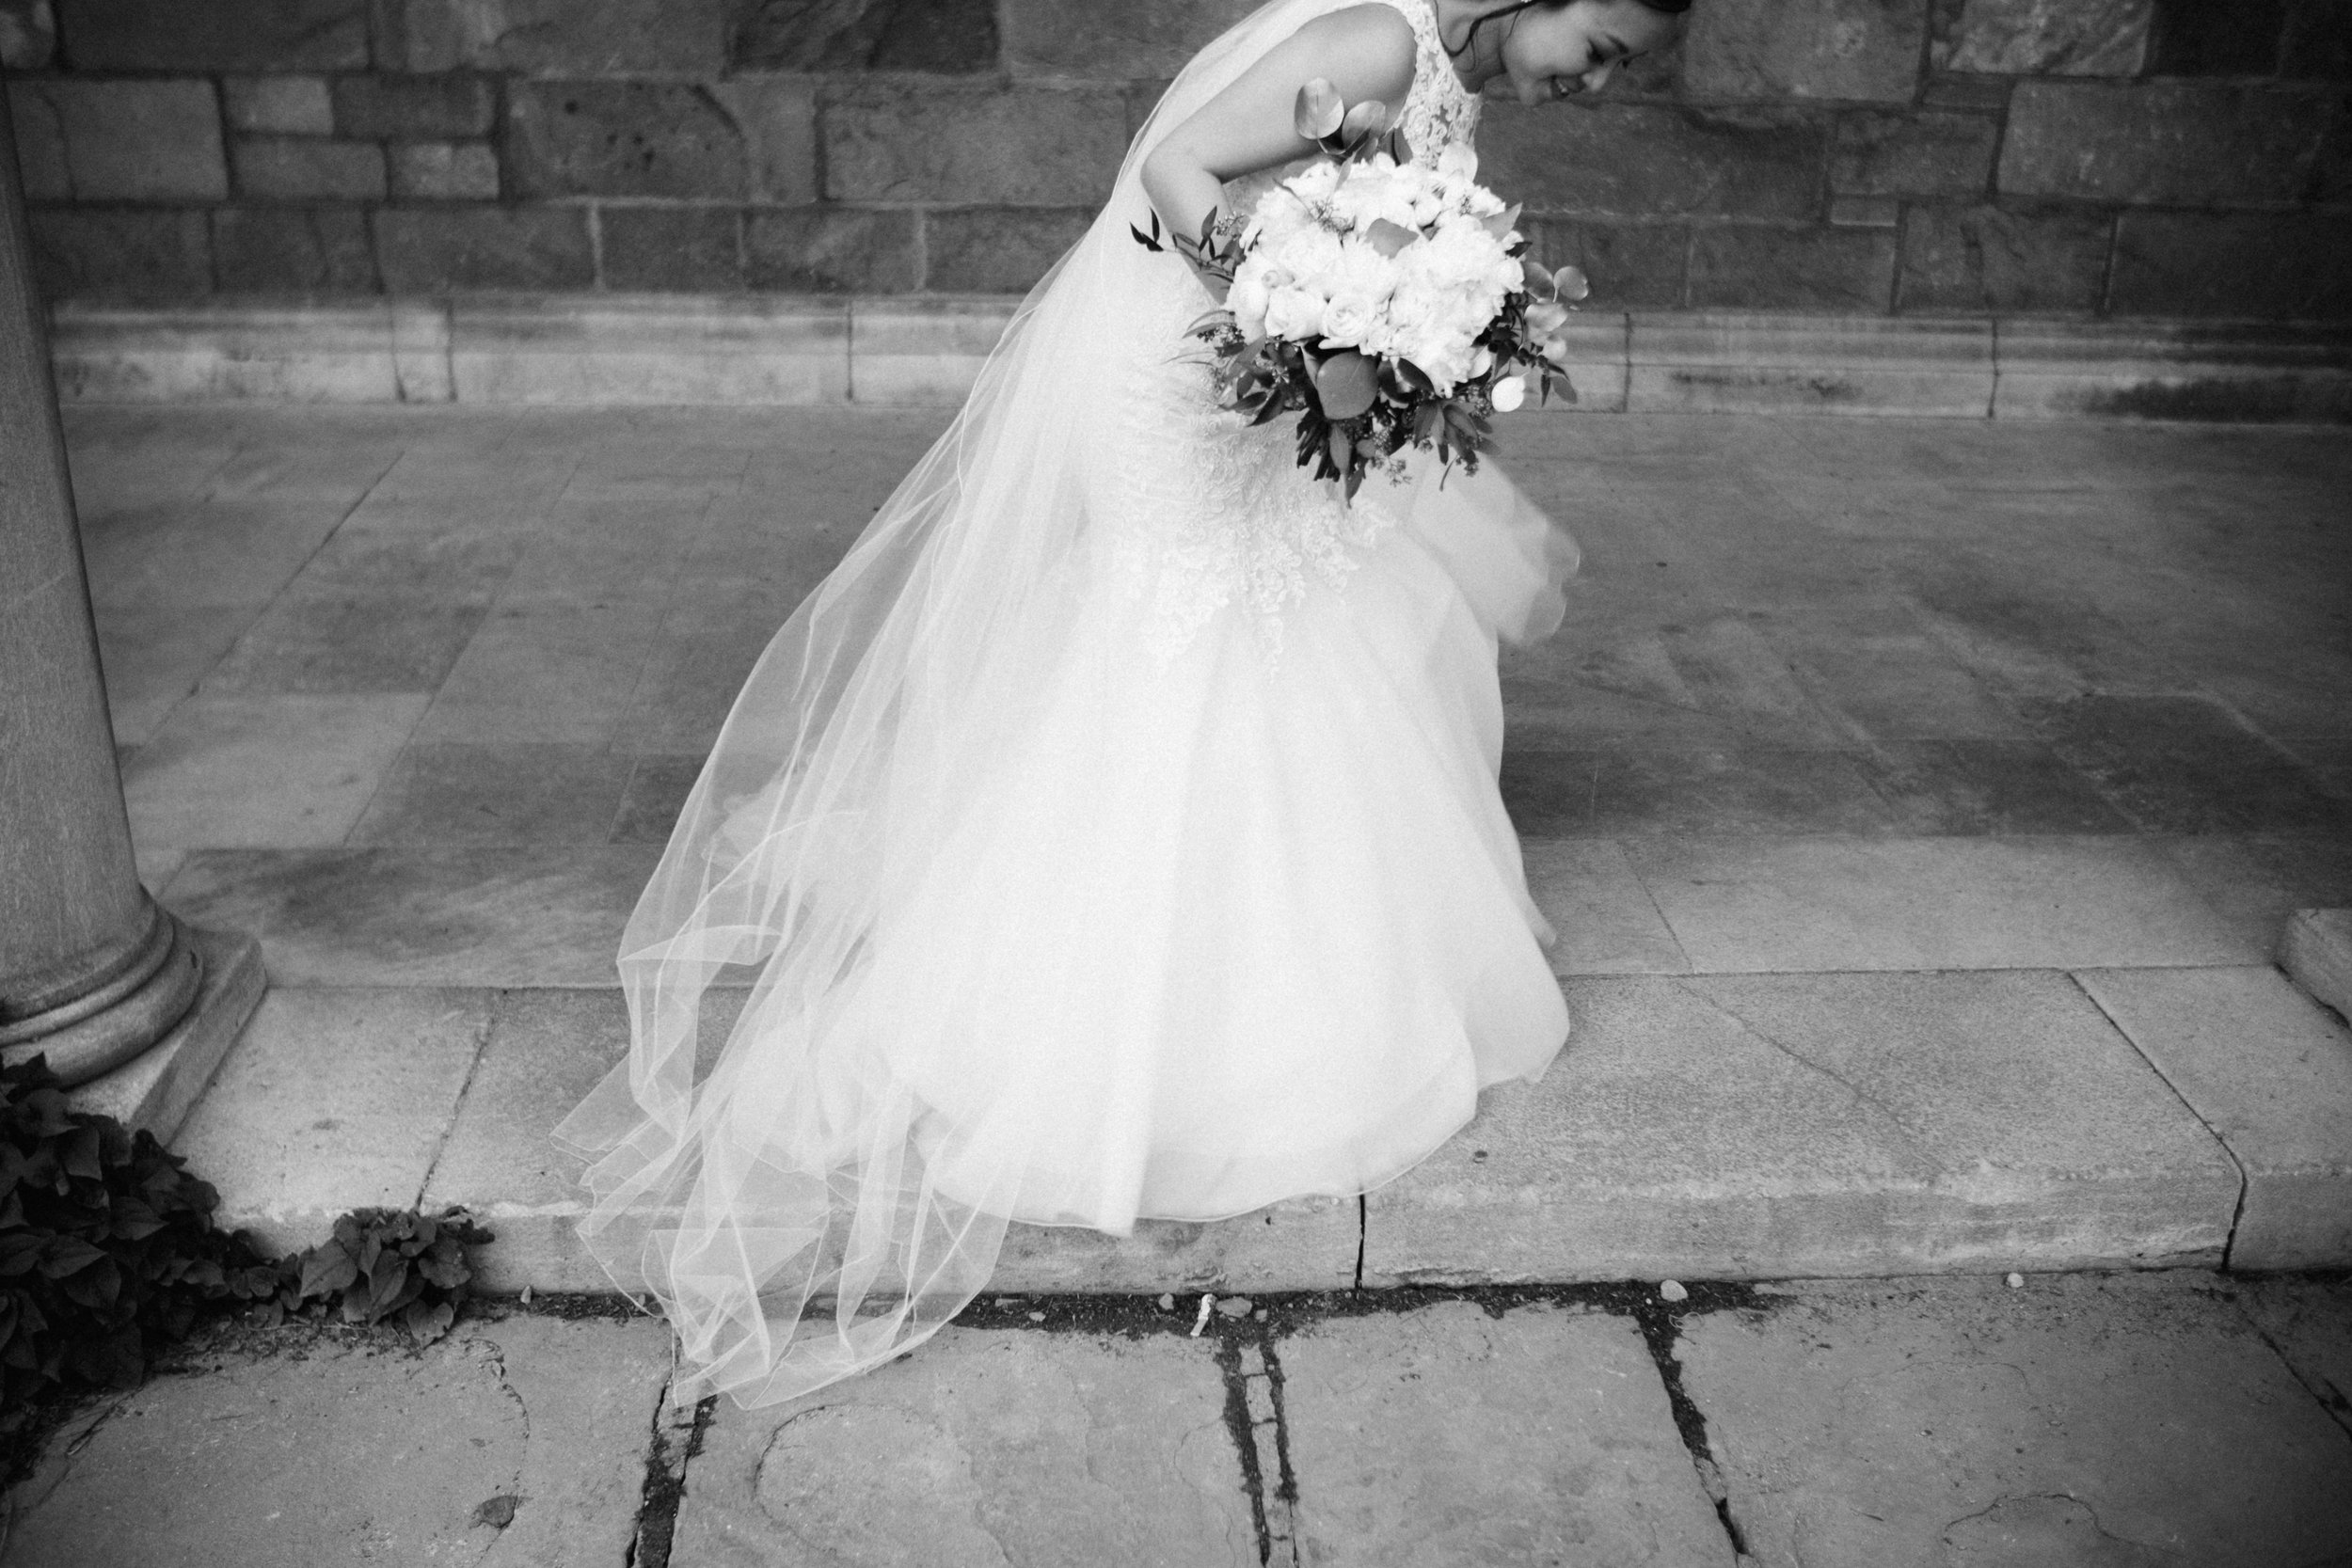 ShadowShinePictures-VeronicaToddKorthals-Ann-Arbor-Wedding-Photography-42.jpg